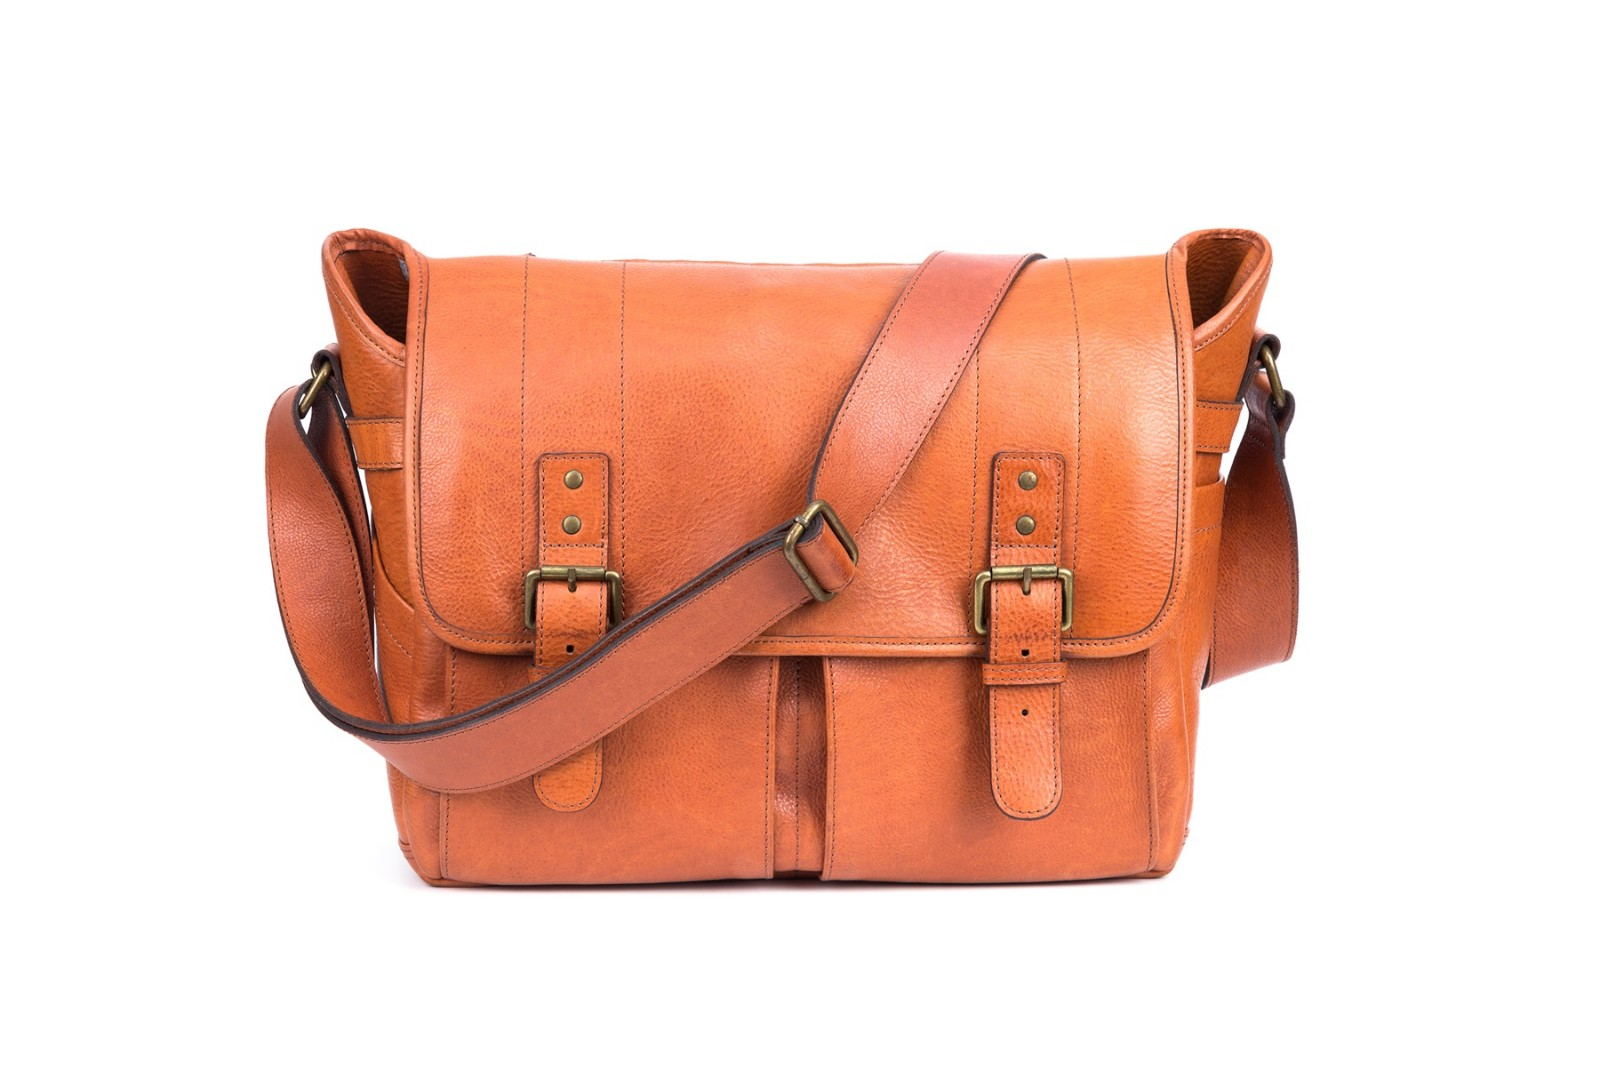 GF bags-High-quality Business Bag | Messenger Bags Leather Large Capacity Cover Style